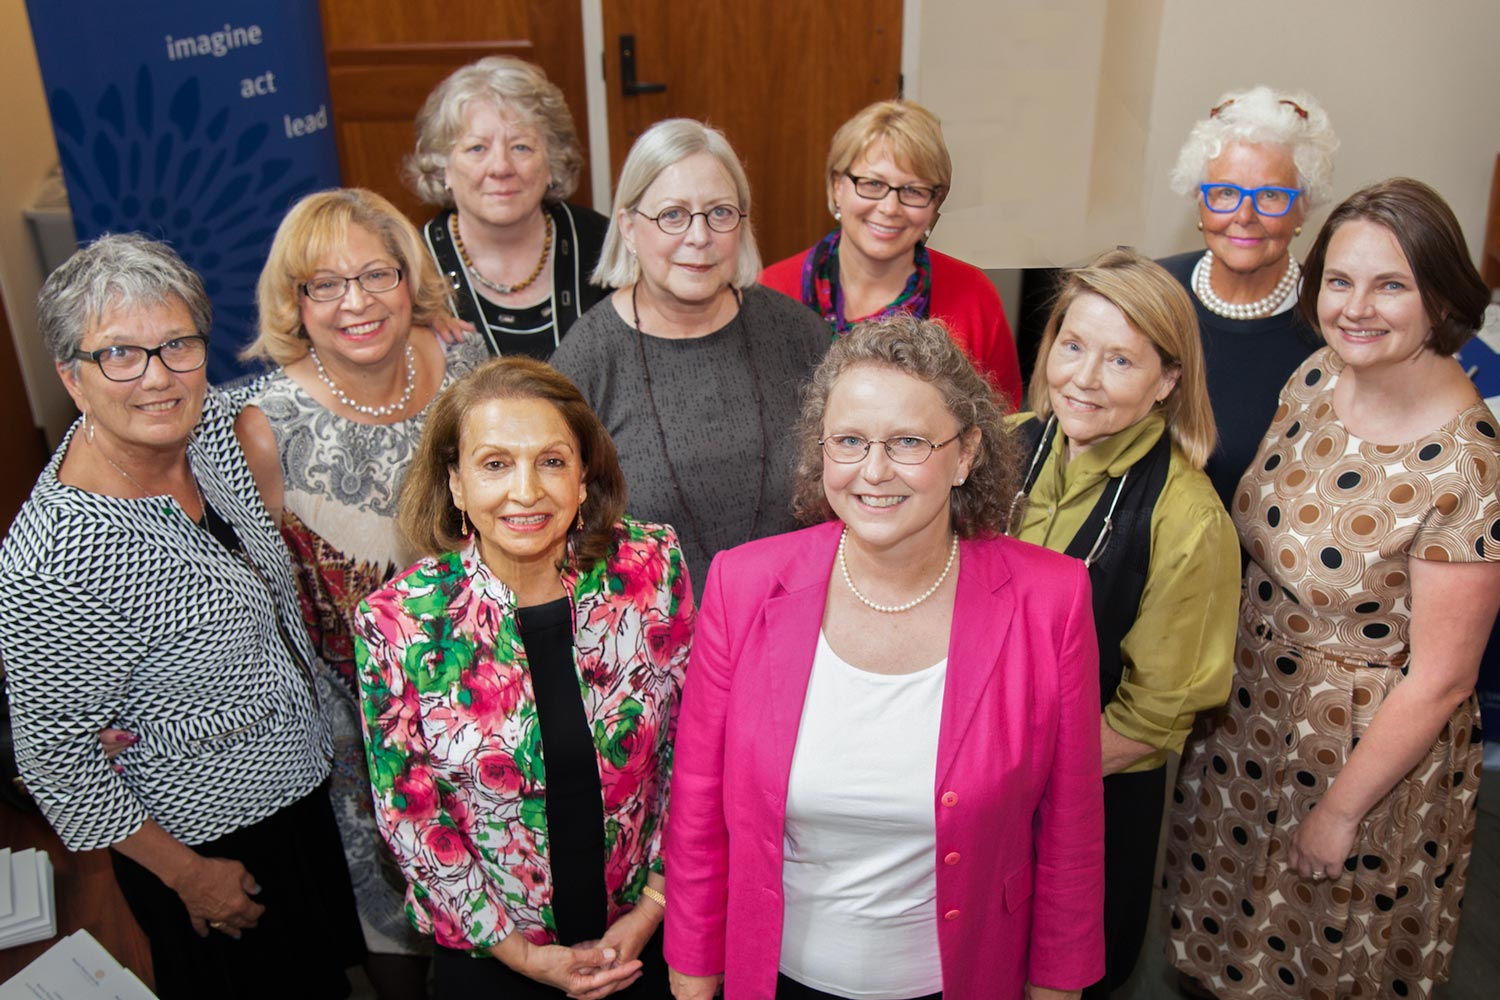 Some of the past 22 Zintl Award winners and Women's Center Director Abigail Palko, far right, gathered in 2016 when engineering professor Pamela Norris (in front with glasses), won the award.